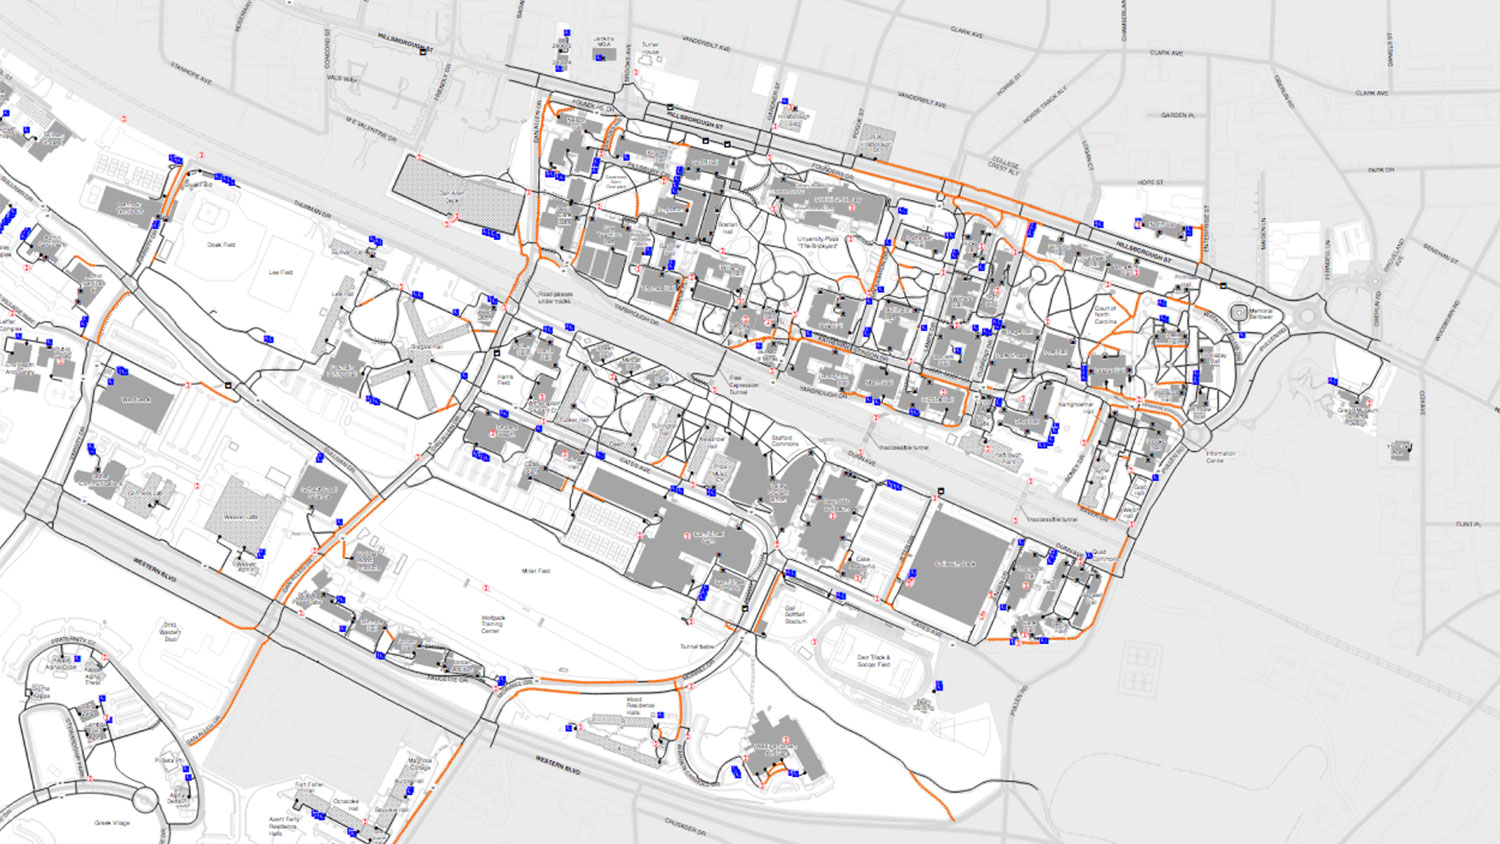 Piece of campus accessibility map